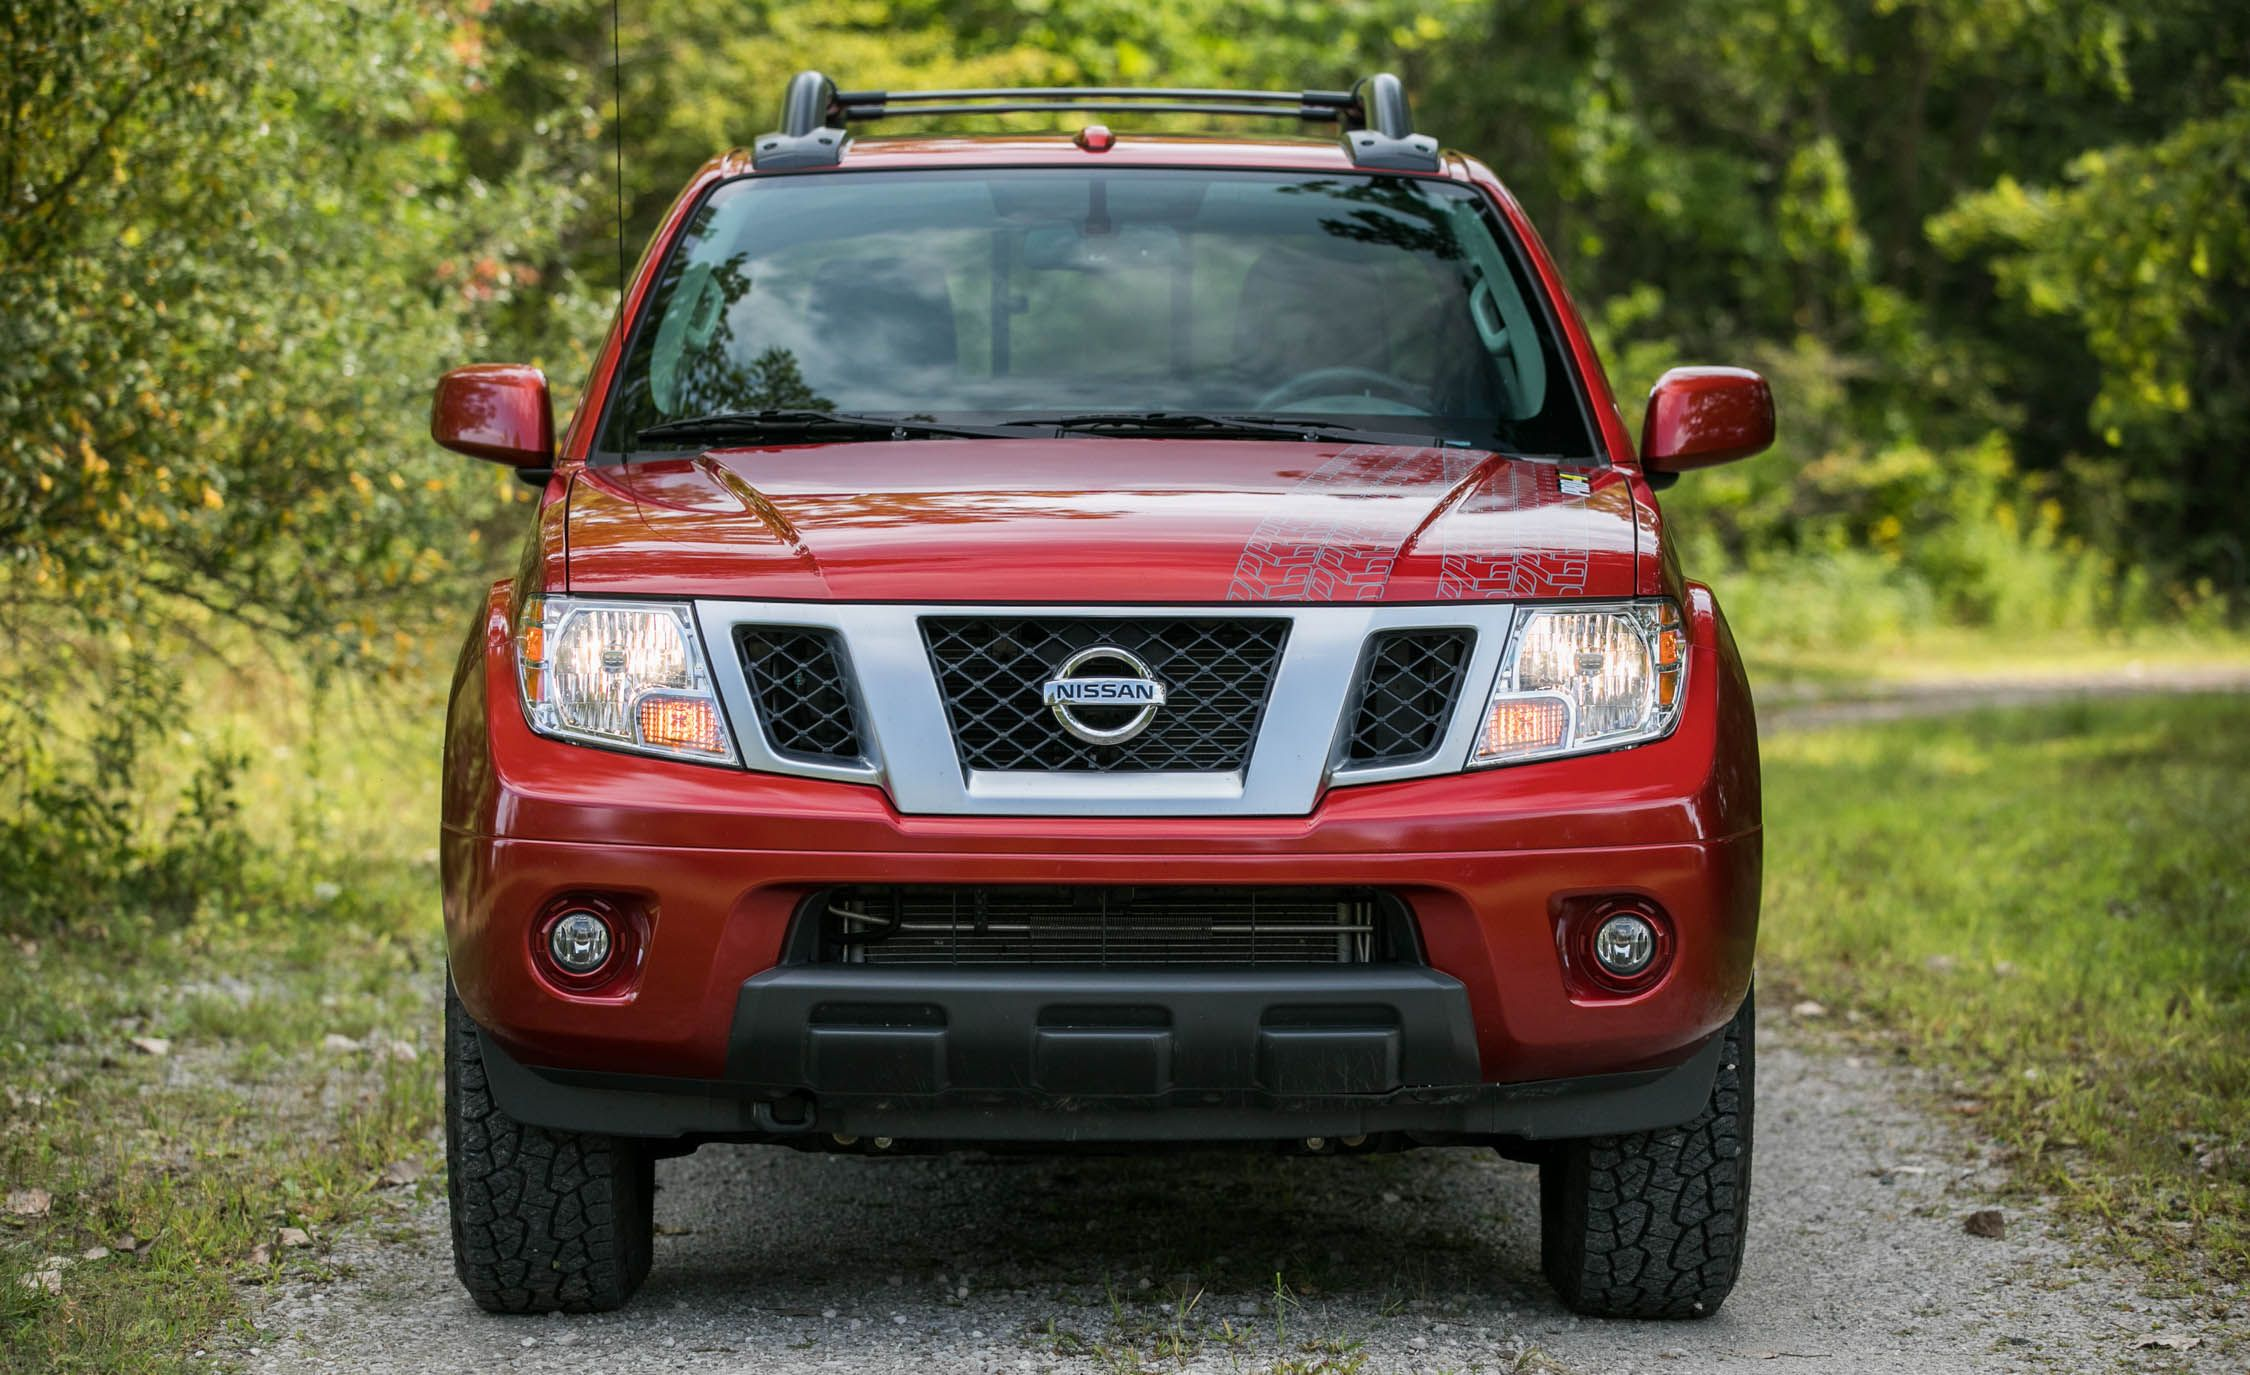 2017 nissan frontier engine and transmission review car and driver rh caranddriver com nissan frontier manual transmission problems 2006 nissan frontier manual transmission problems